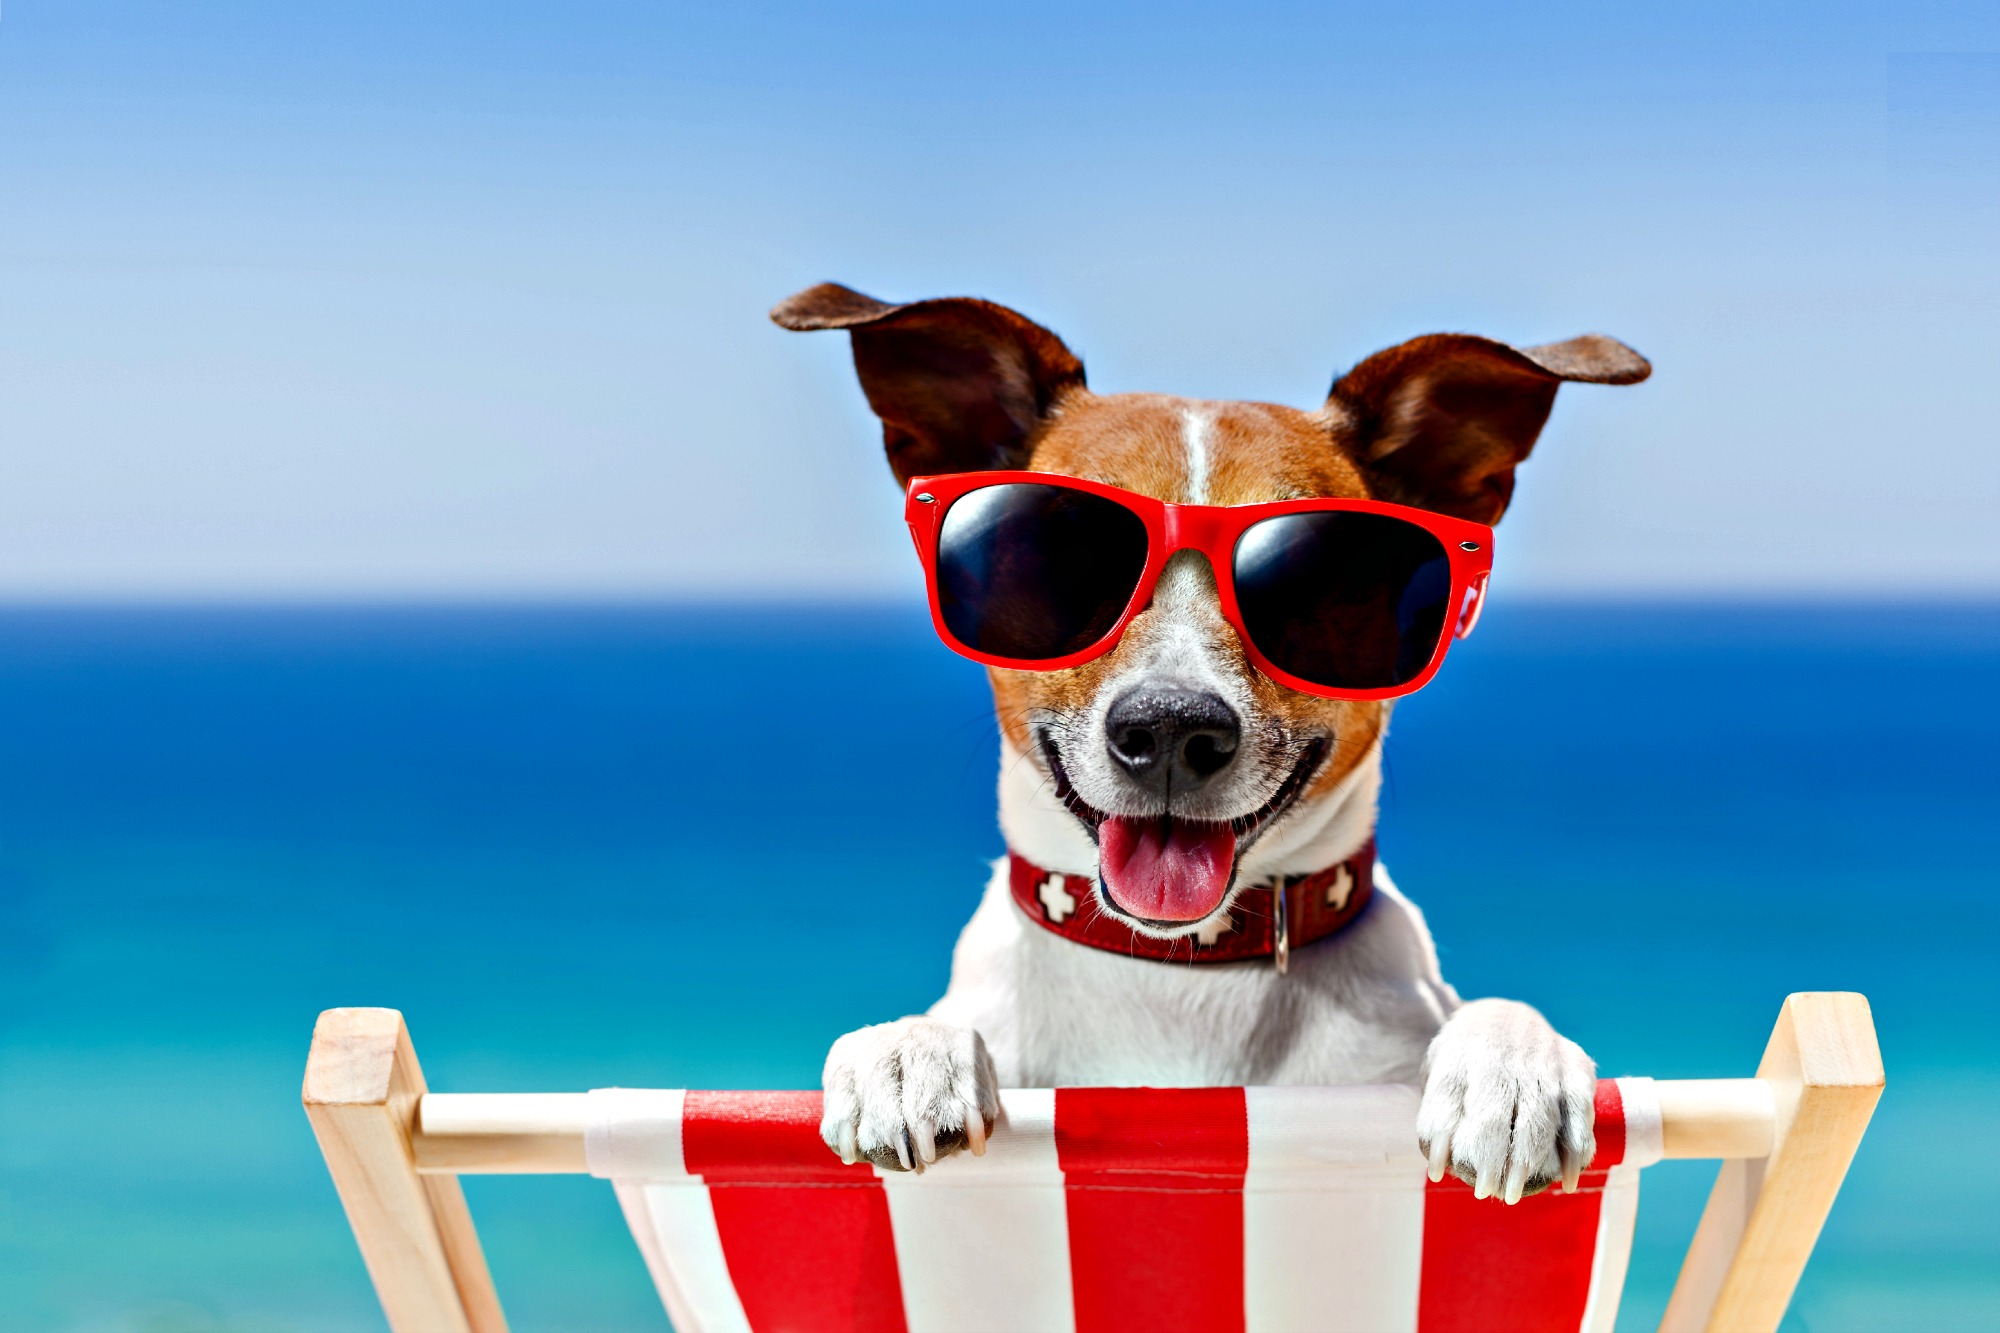 Dog in sunglasses sitting on a beach chair at a dog-friendly beach